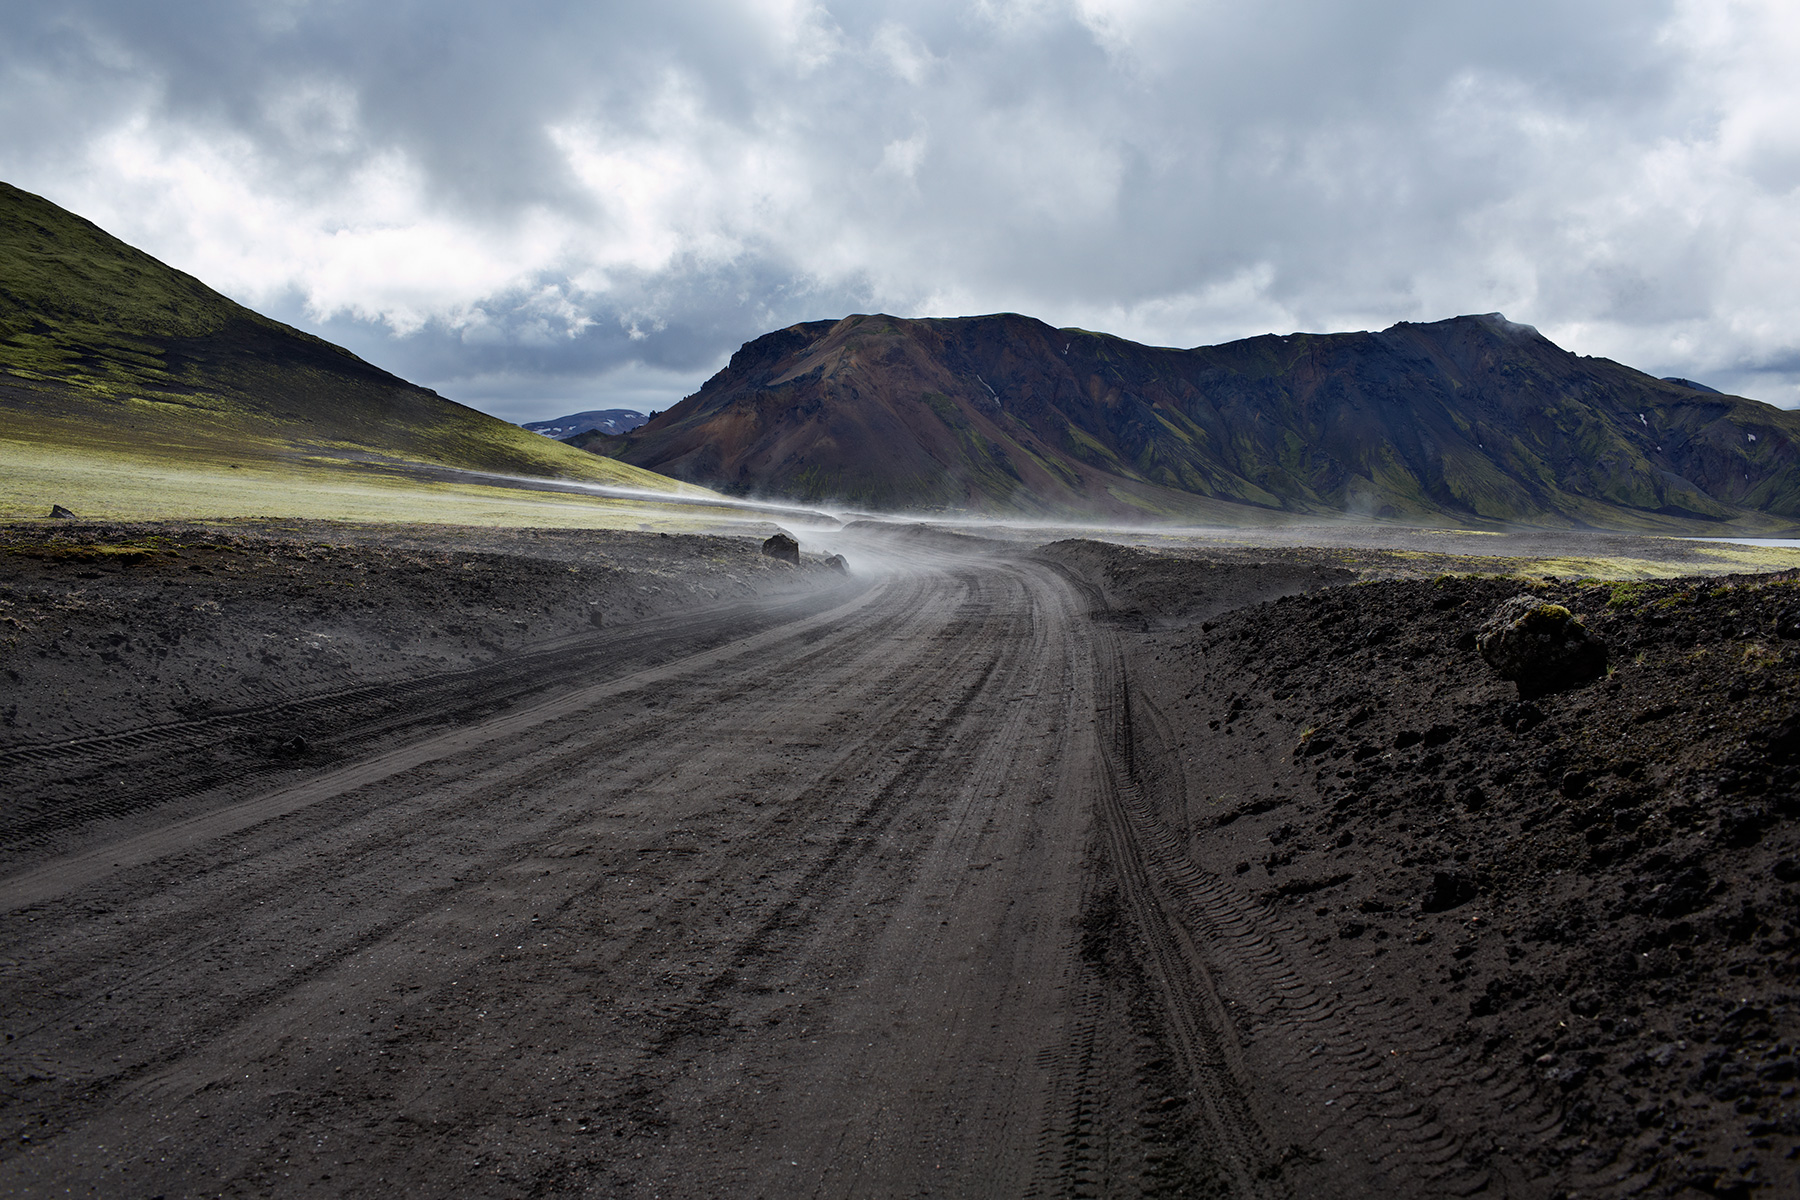 Empty road in mountain landscape in Iceland